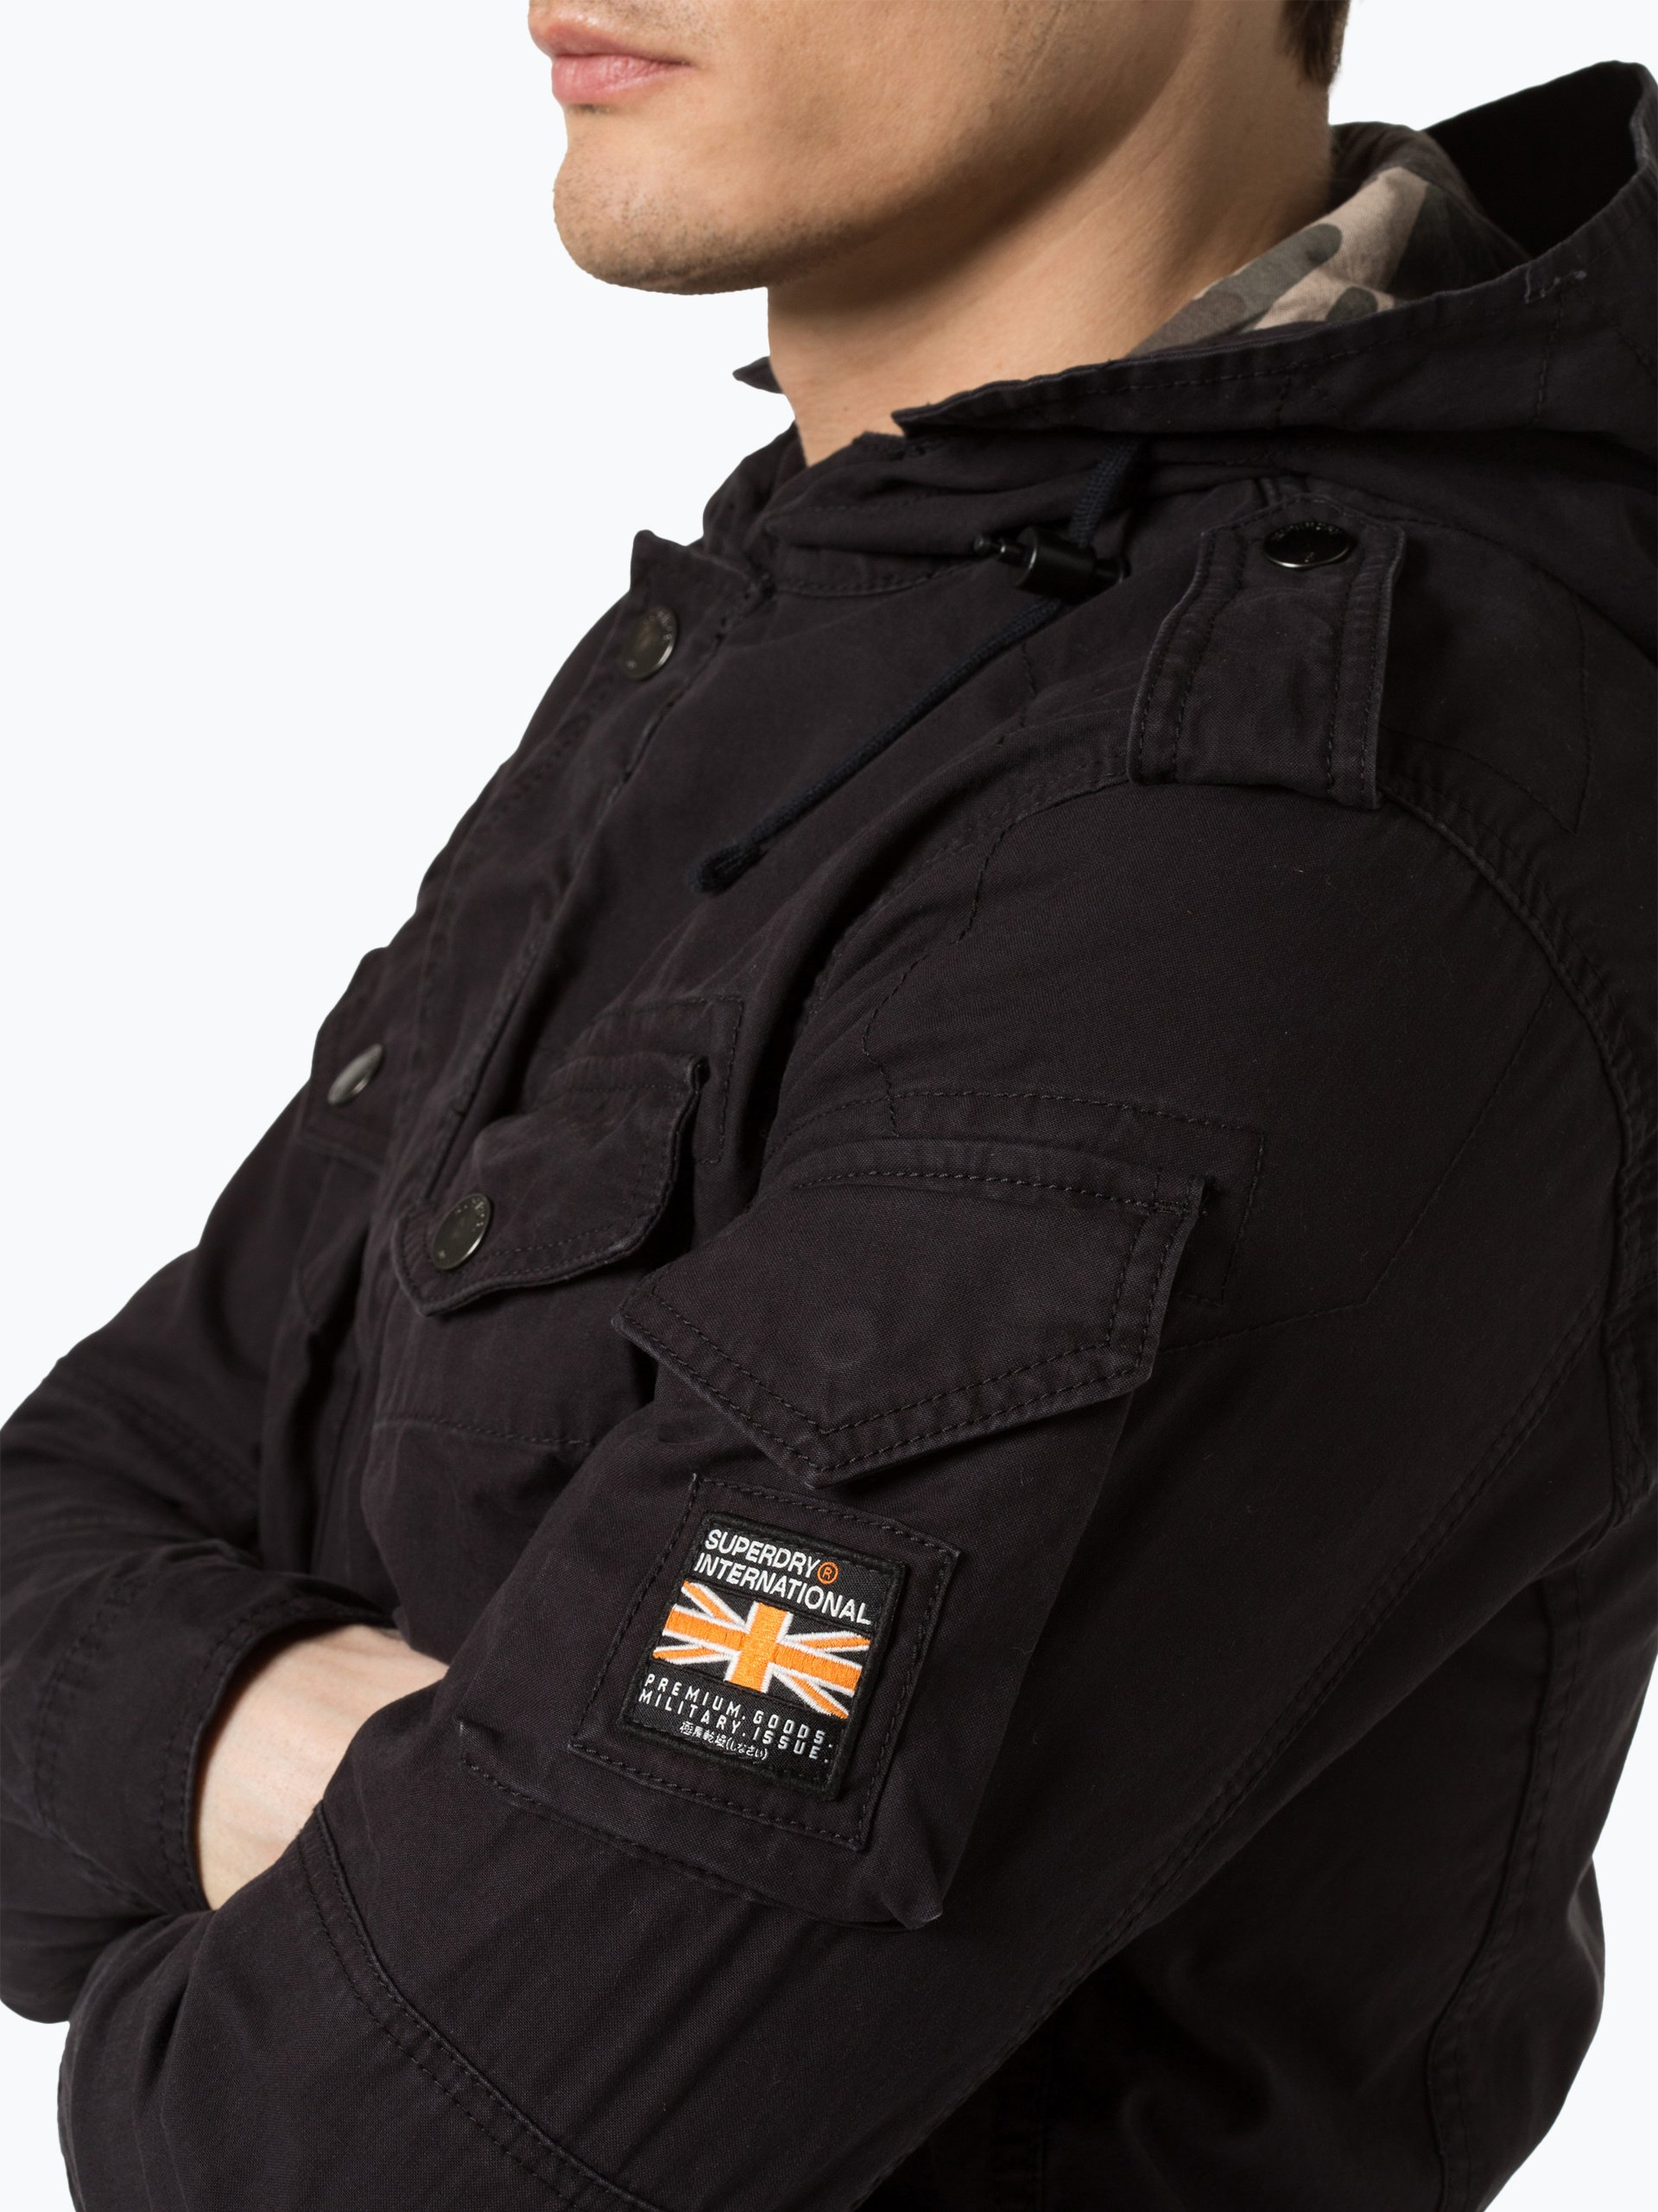 superdry herren jacke schwarz uni online kaufen vangraaf com. Black Bedroom Furniture Sets. Home Design Ideas